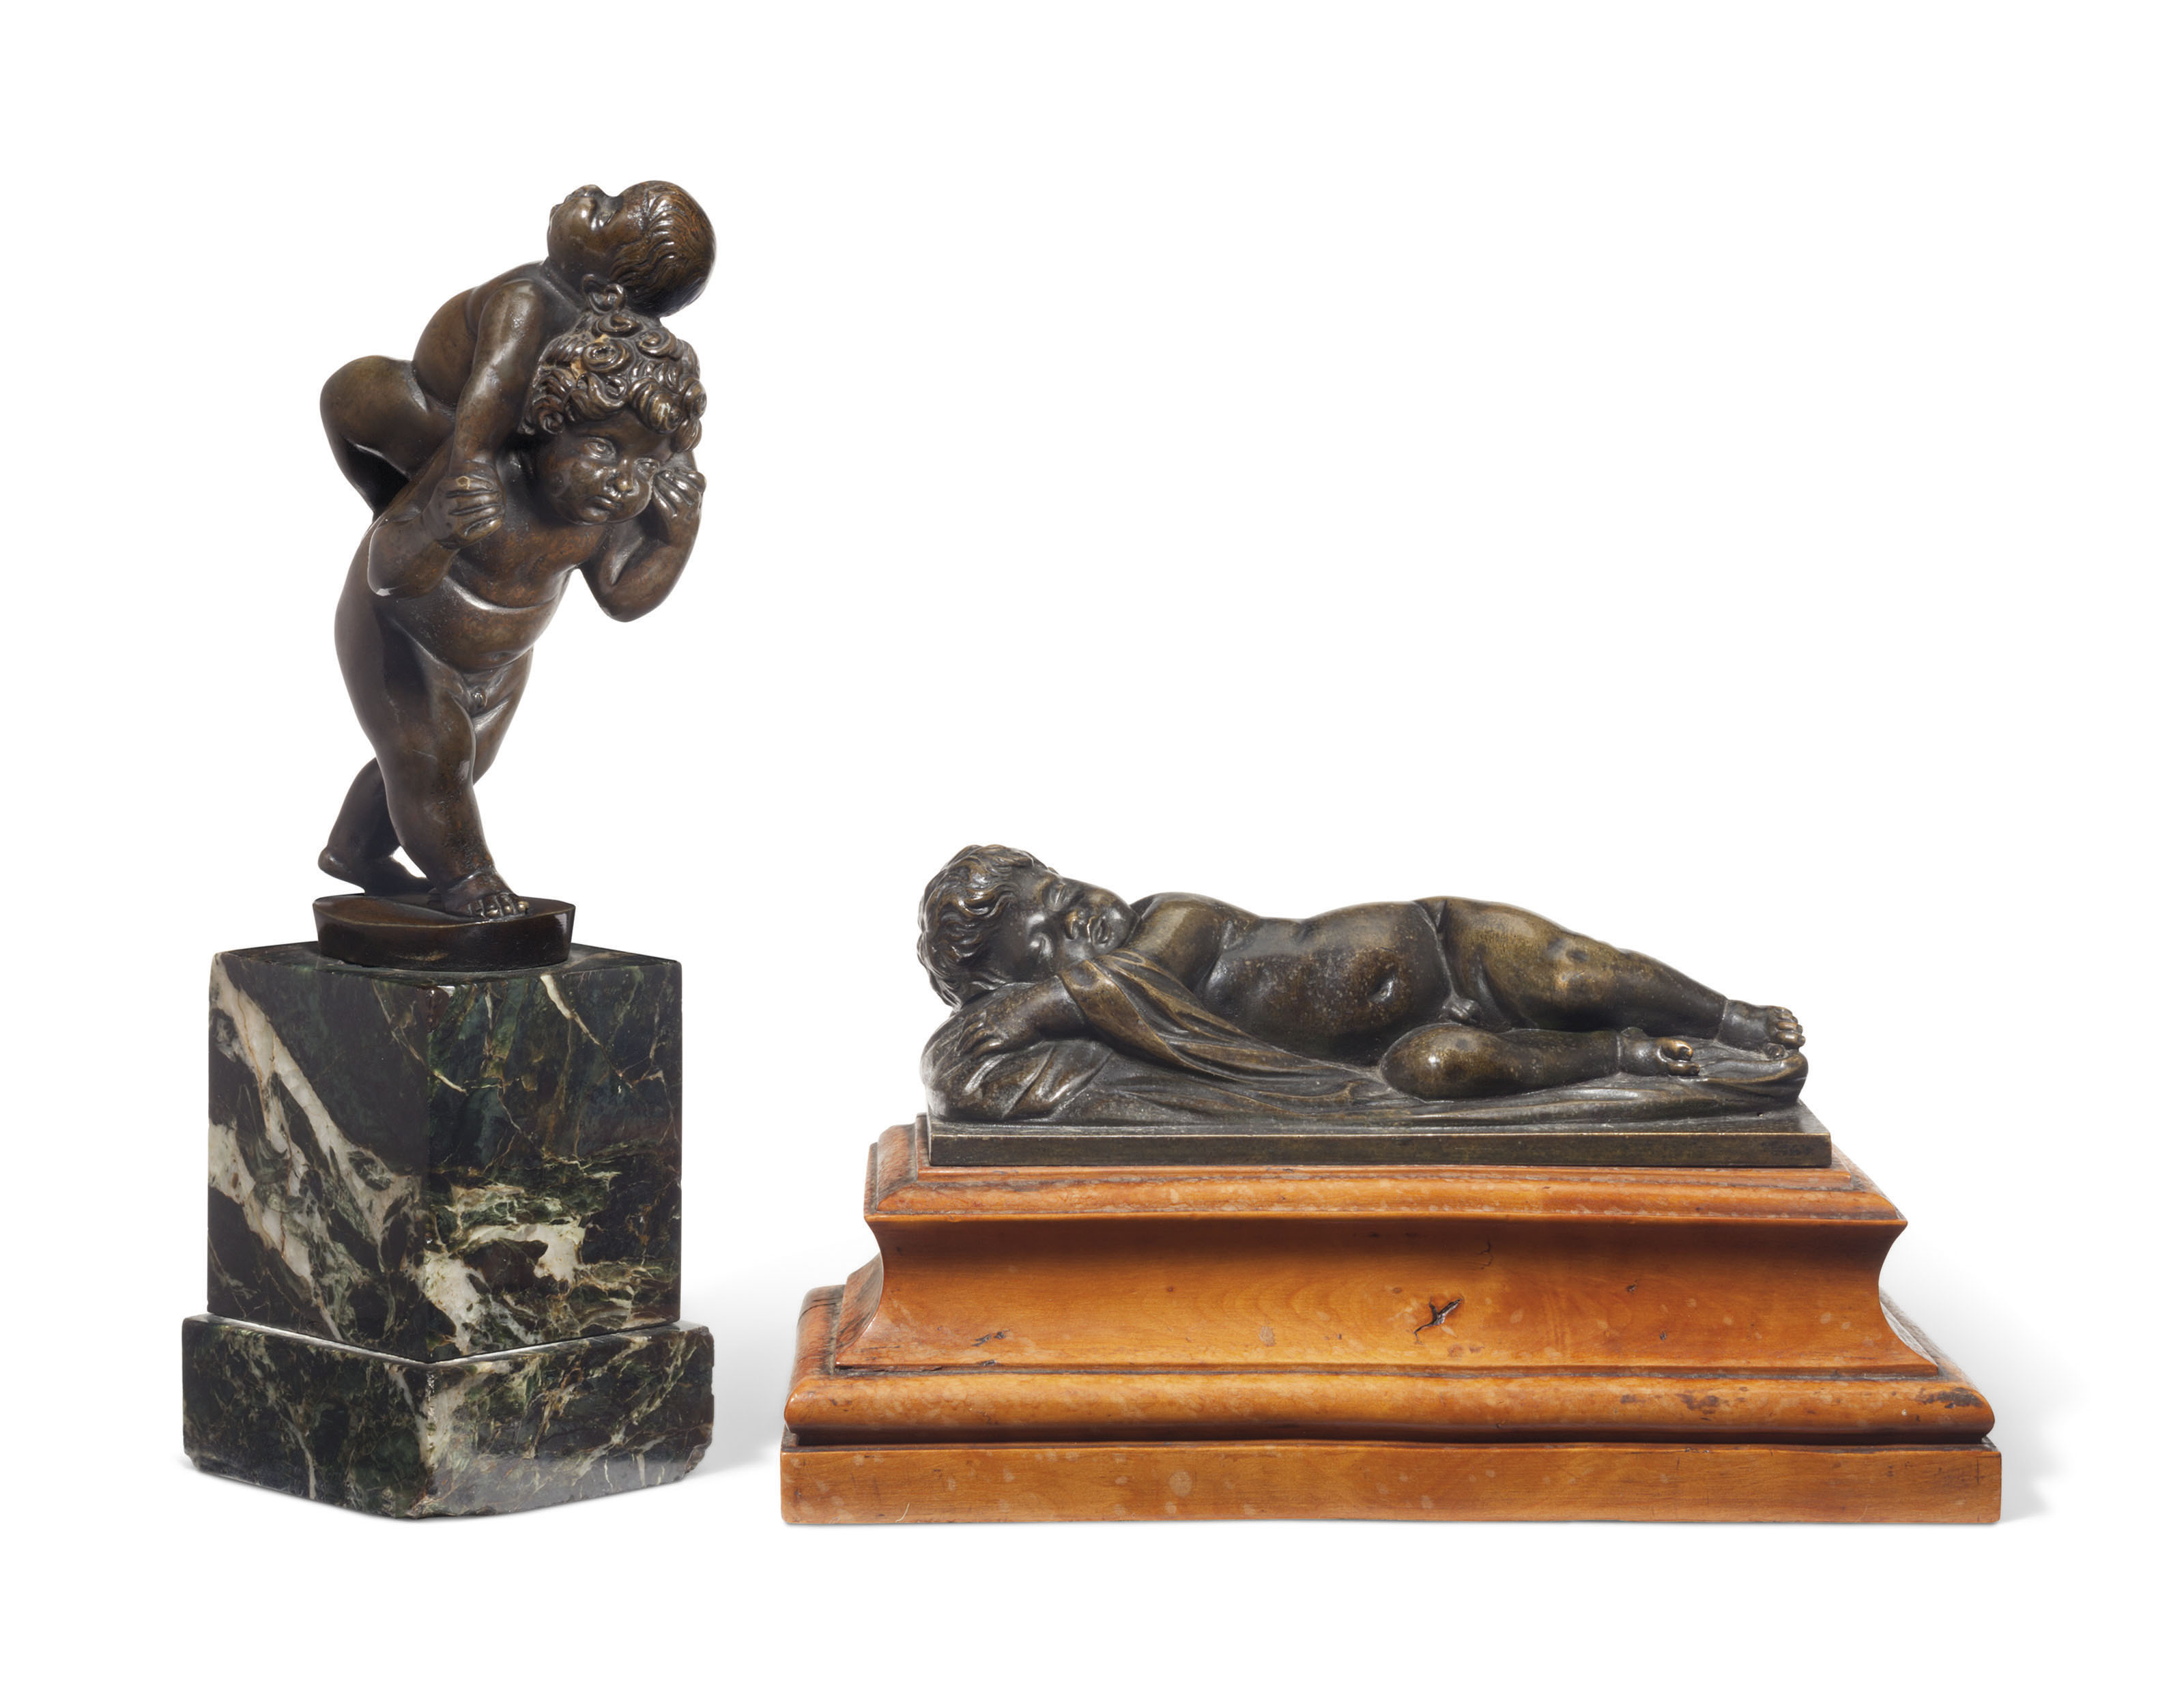 A BRONZE GROUP OF A CHILD CARRYING ANOTHER CHILD ON HIS BACK, TOGETHER WITH A BRONZE MODEL OF A SLEEPING CHILD